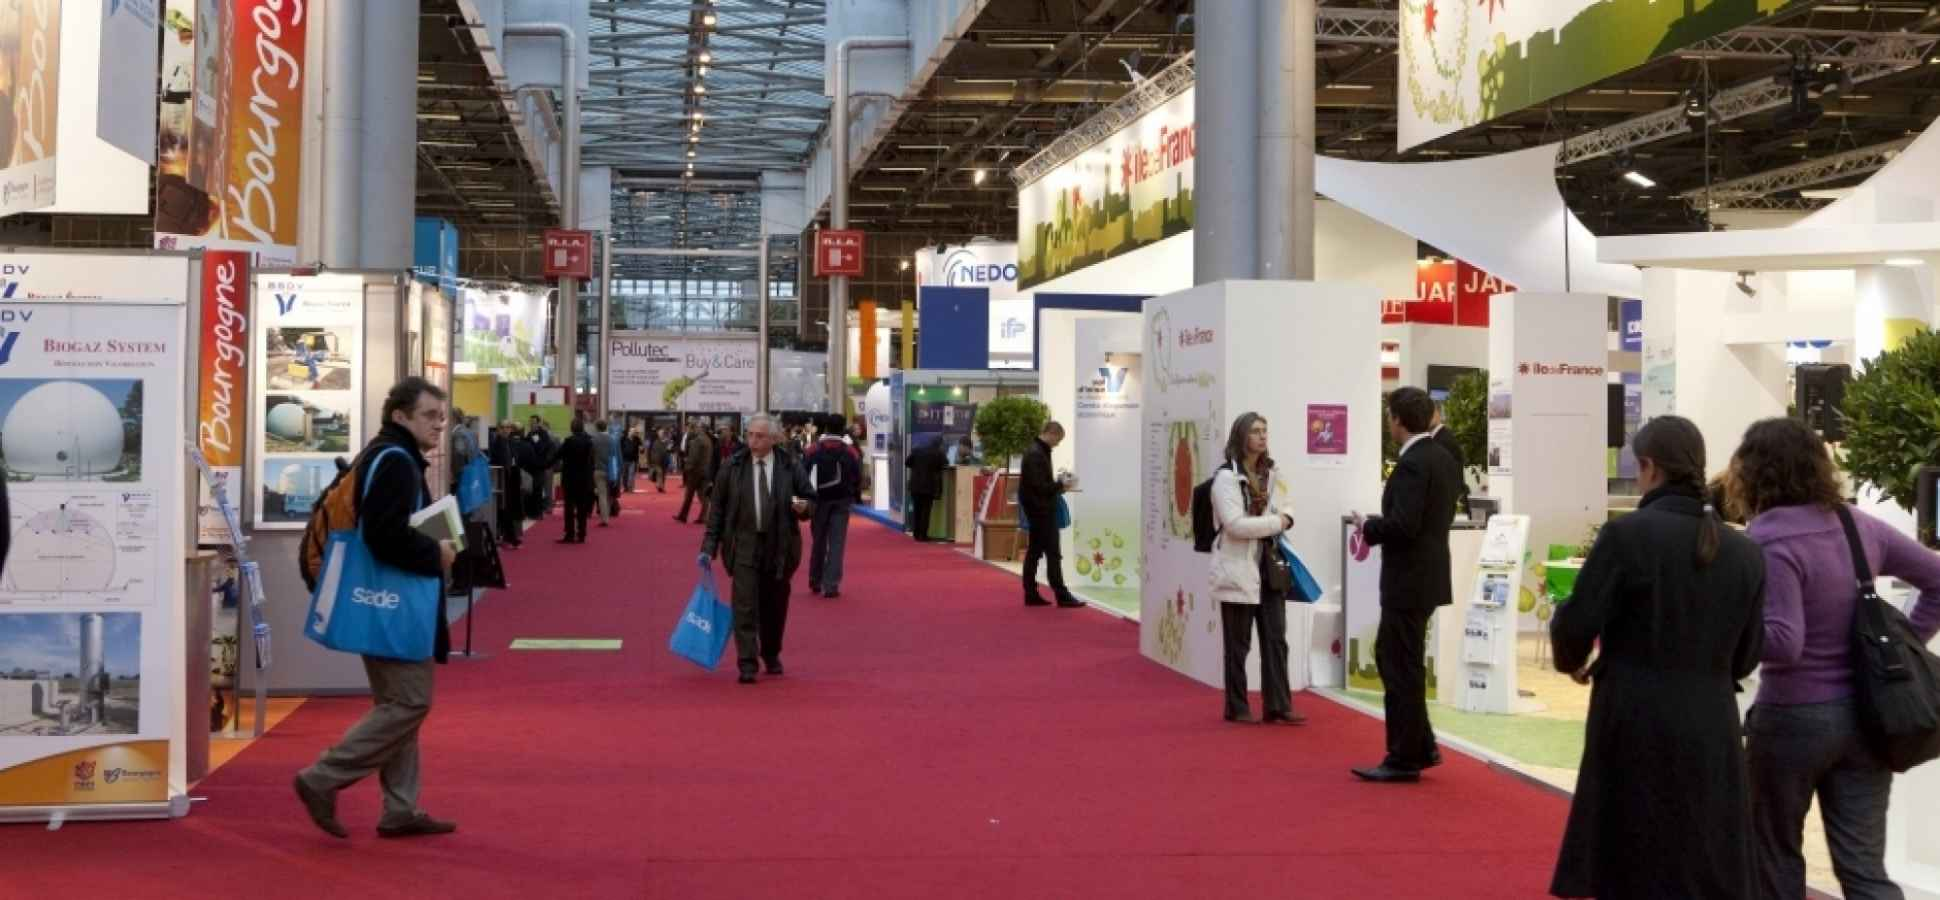 5 Reasons Why Trade Shows Are Key to Your Marketing Mix